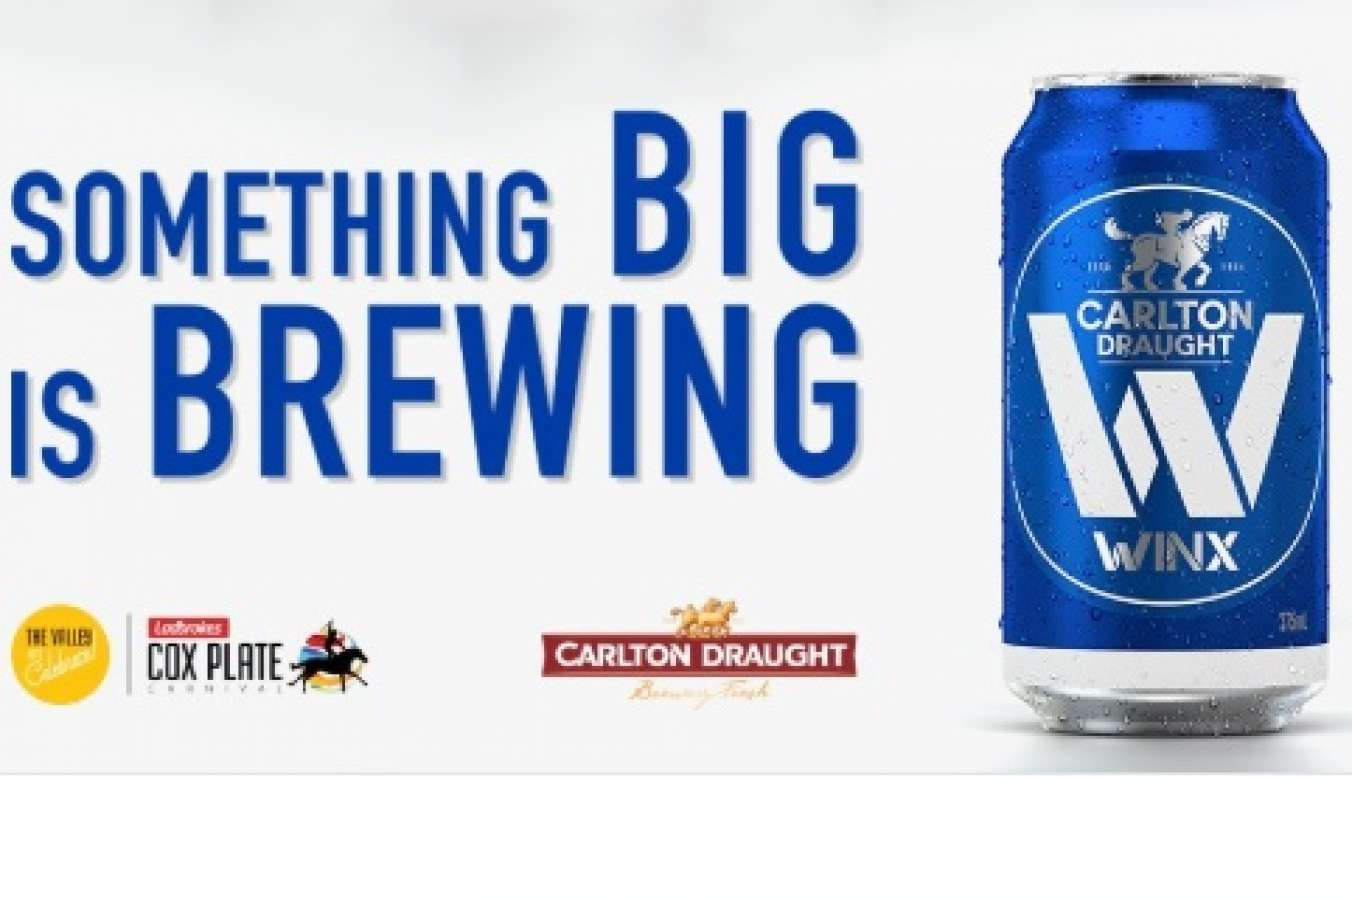 Limited Edition Winx Cans To Commemorate Fourth Cox Plate Tilt photo